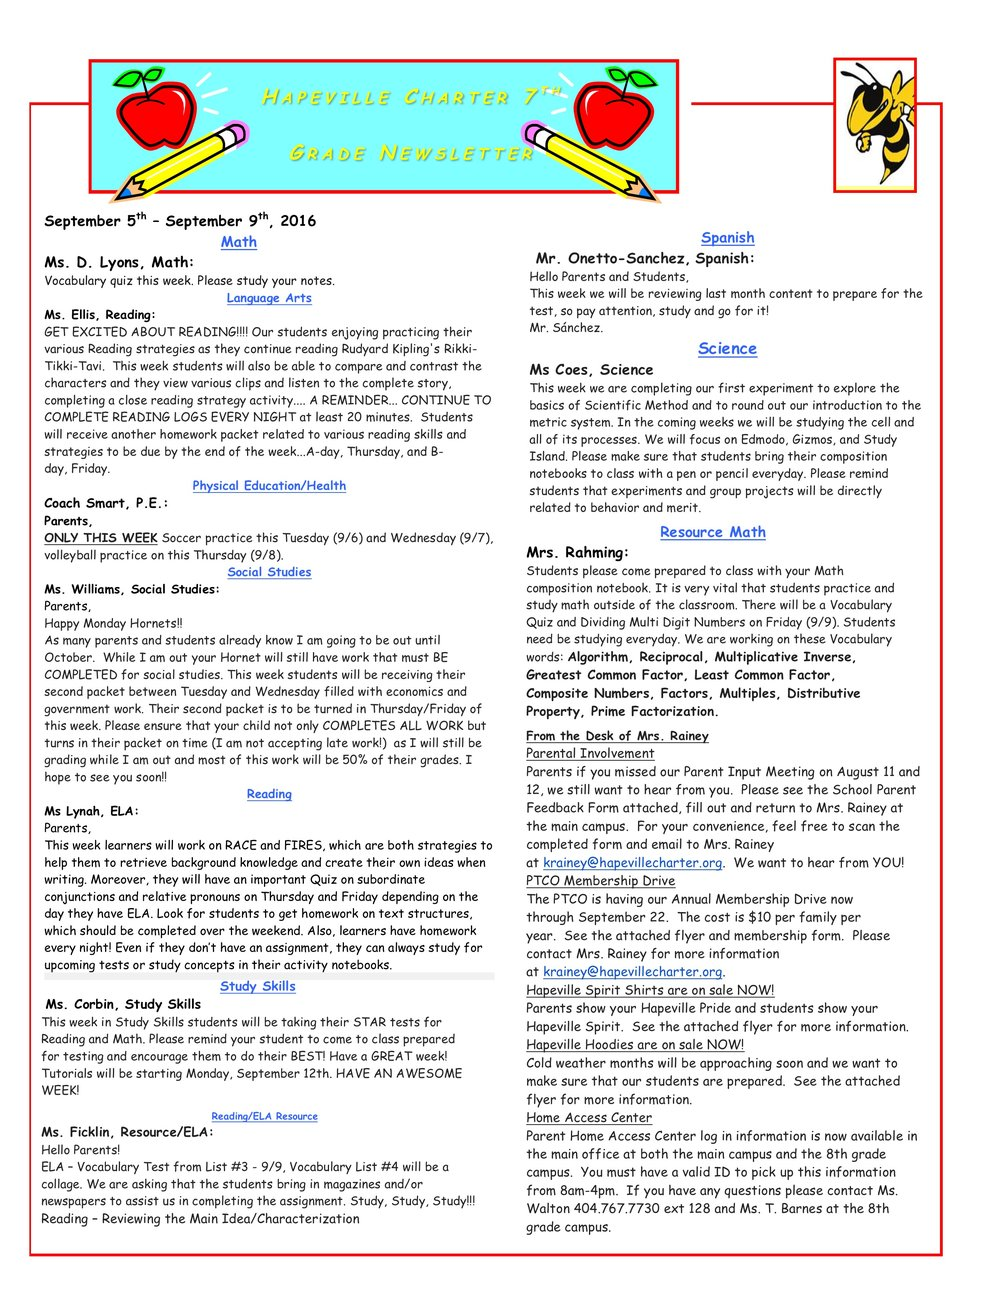 Newsletter Image7th Grade Newsletter 9-5-2016.jpeg